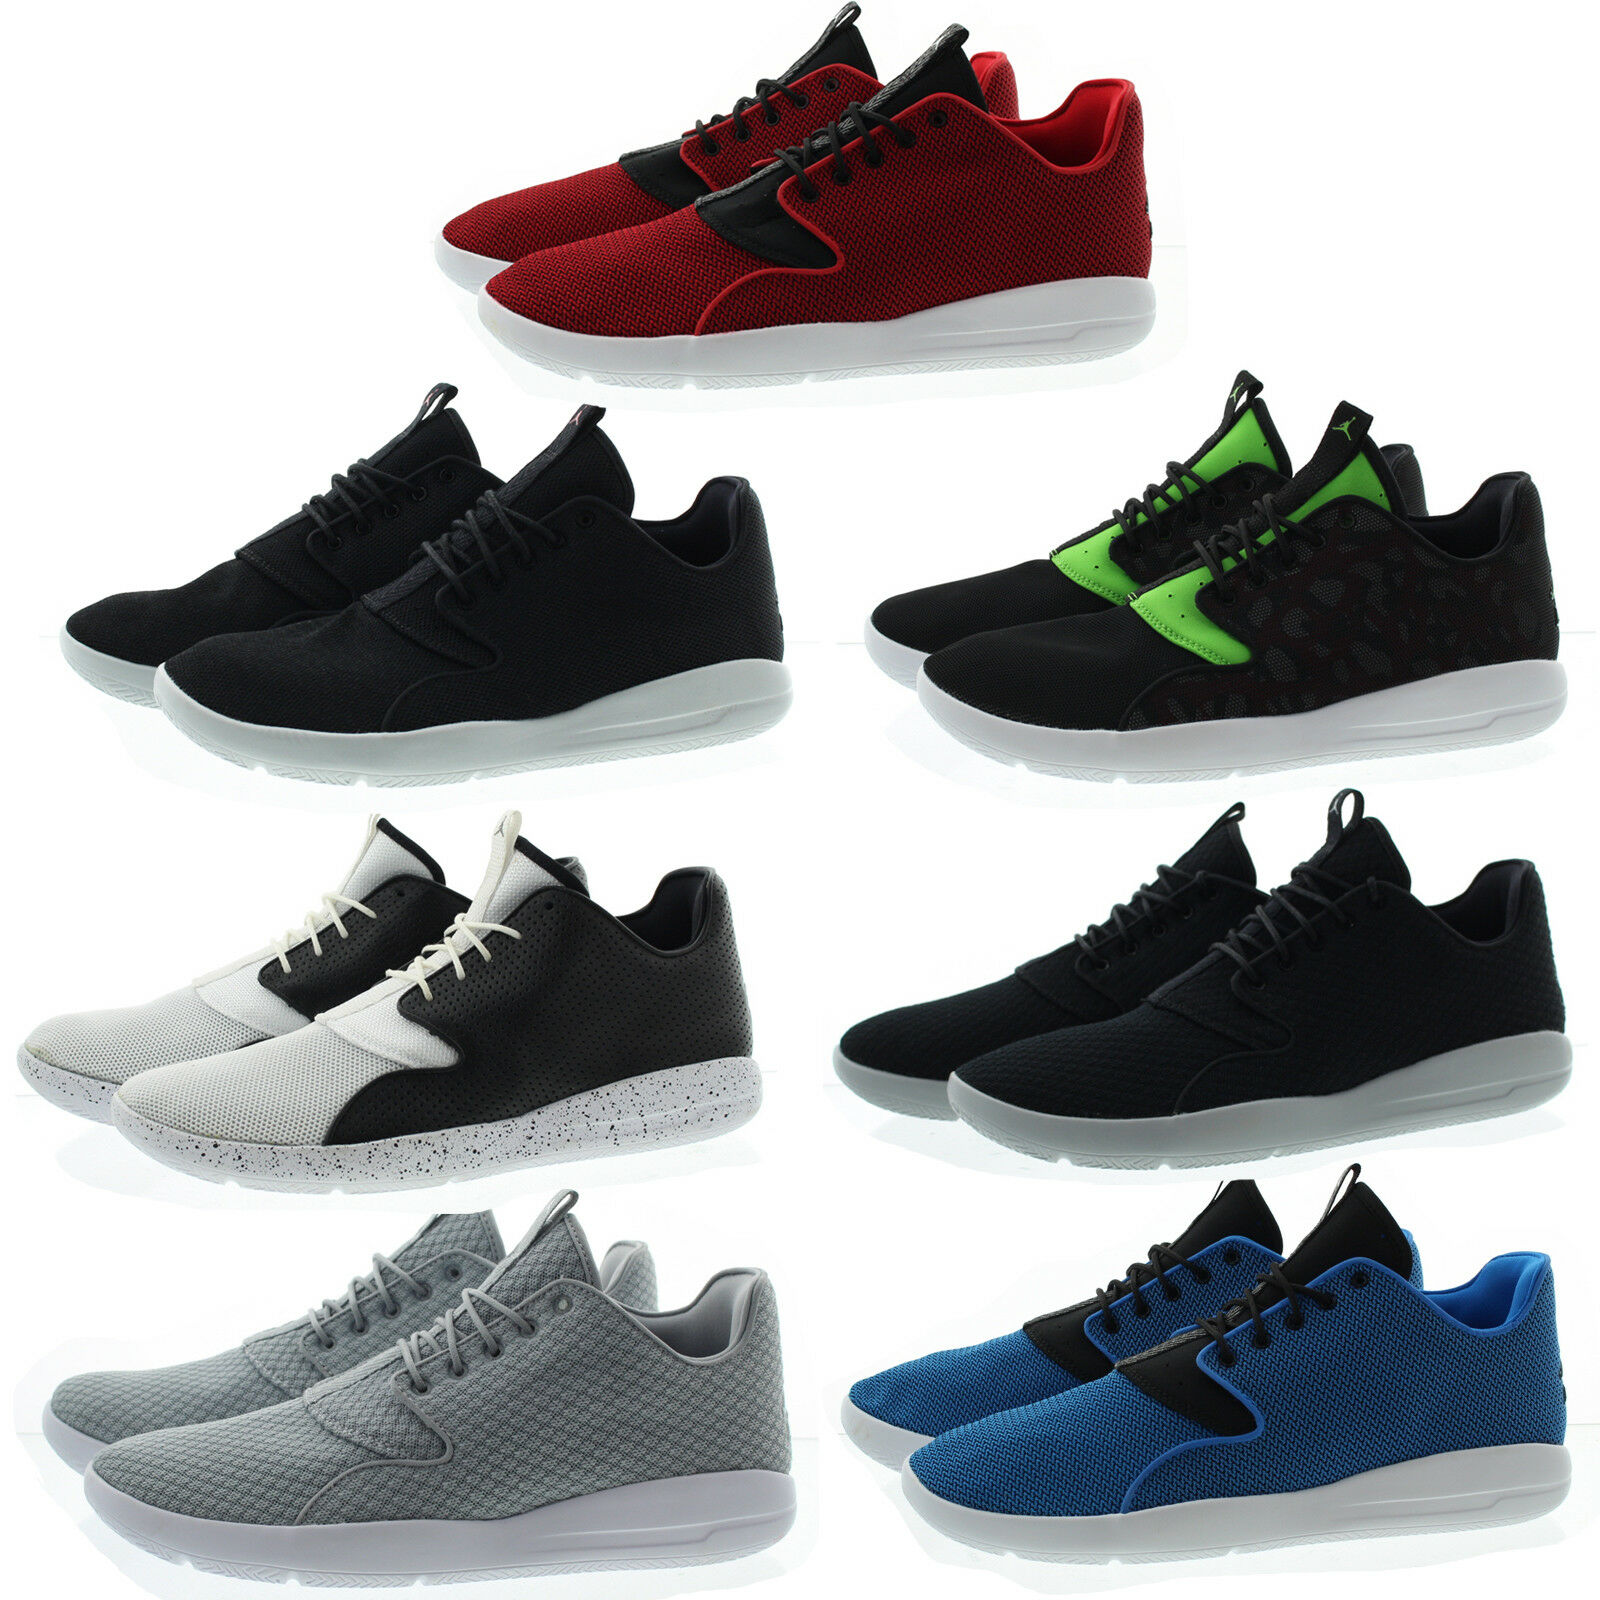 reputable site 58c84 257a3 Nike 724010 Mens Air Jordan Eclipse Low Top Running Running Running  Training Shoes Sneakers 9f4900